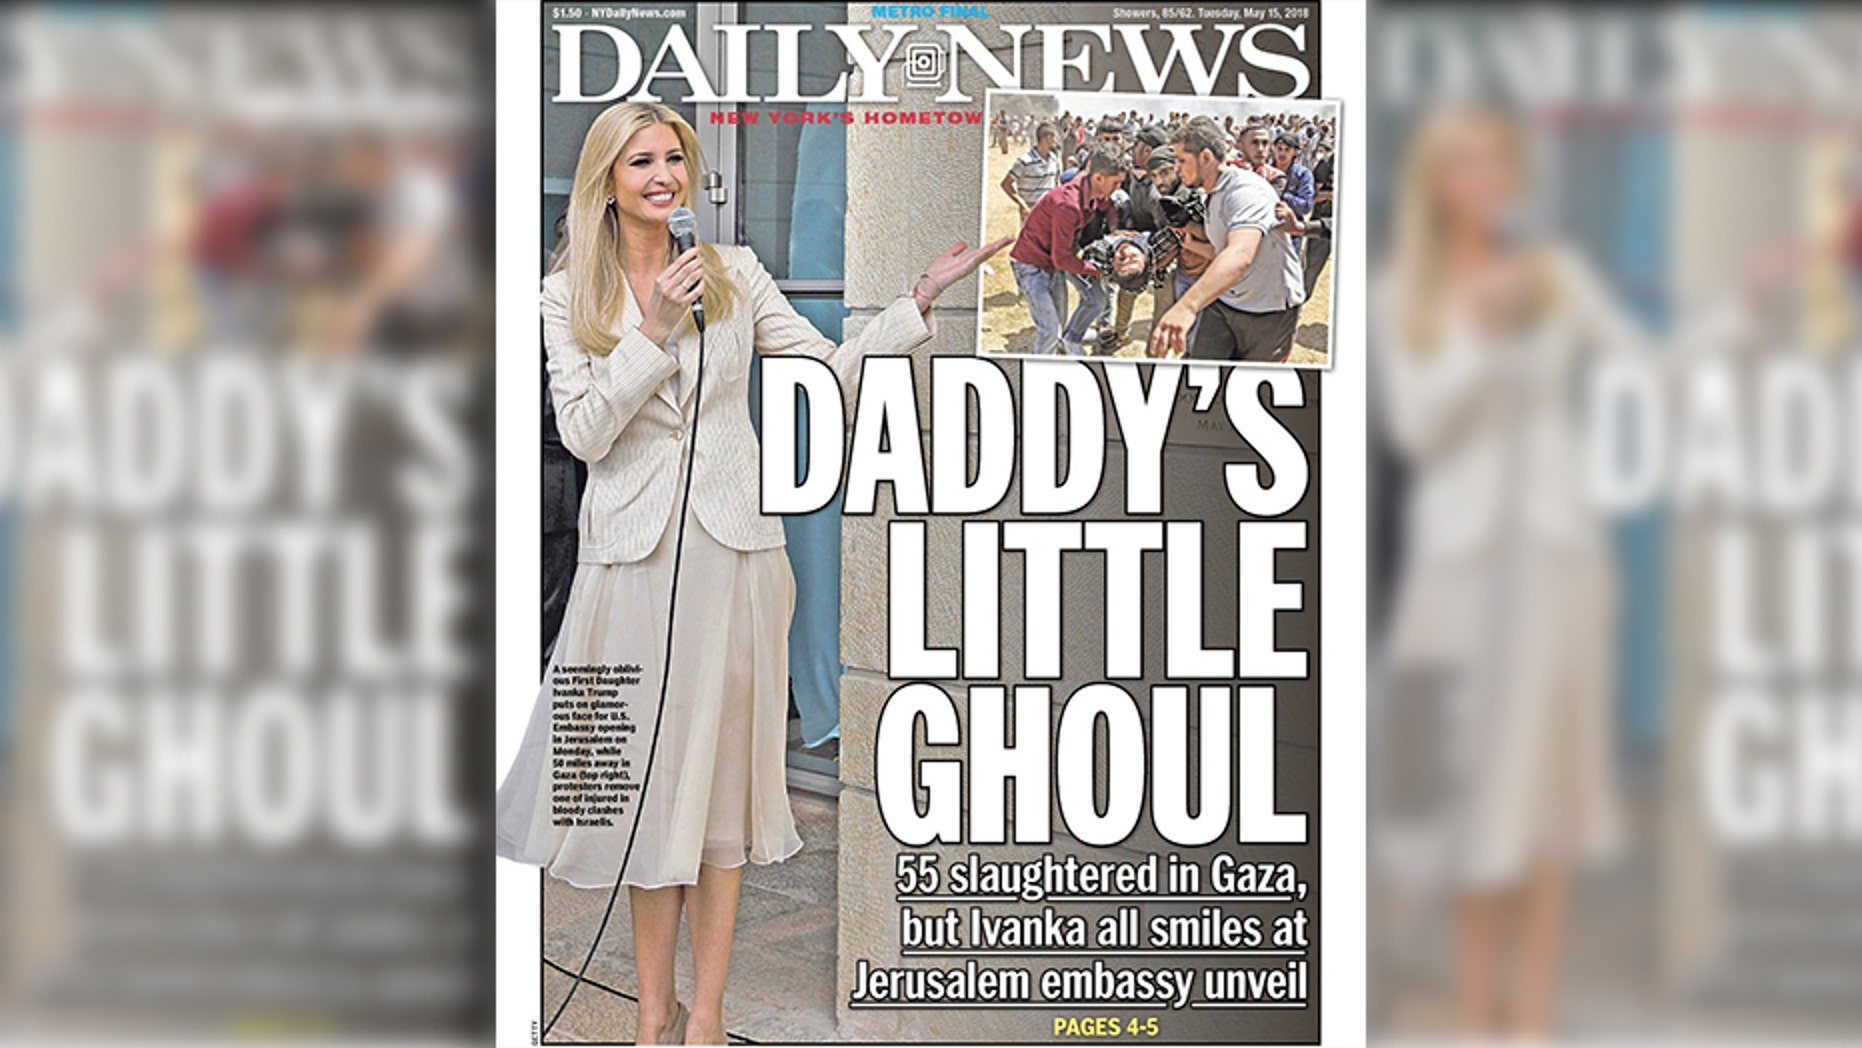 Critics feel the tabloid went too far with its latest anti-Trump cover attacking First Daughter Ivanka Trump.